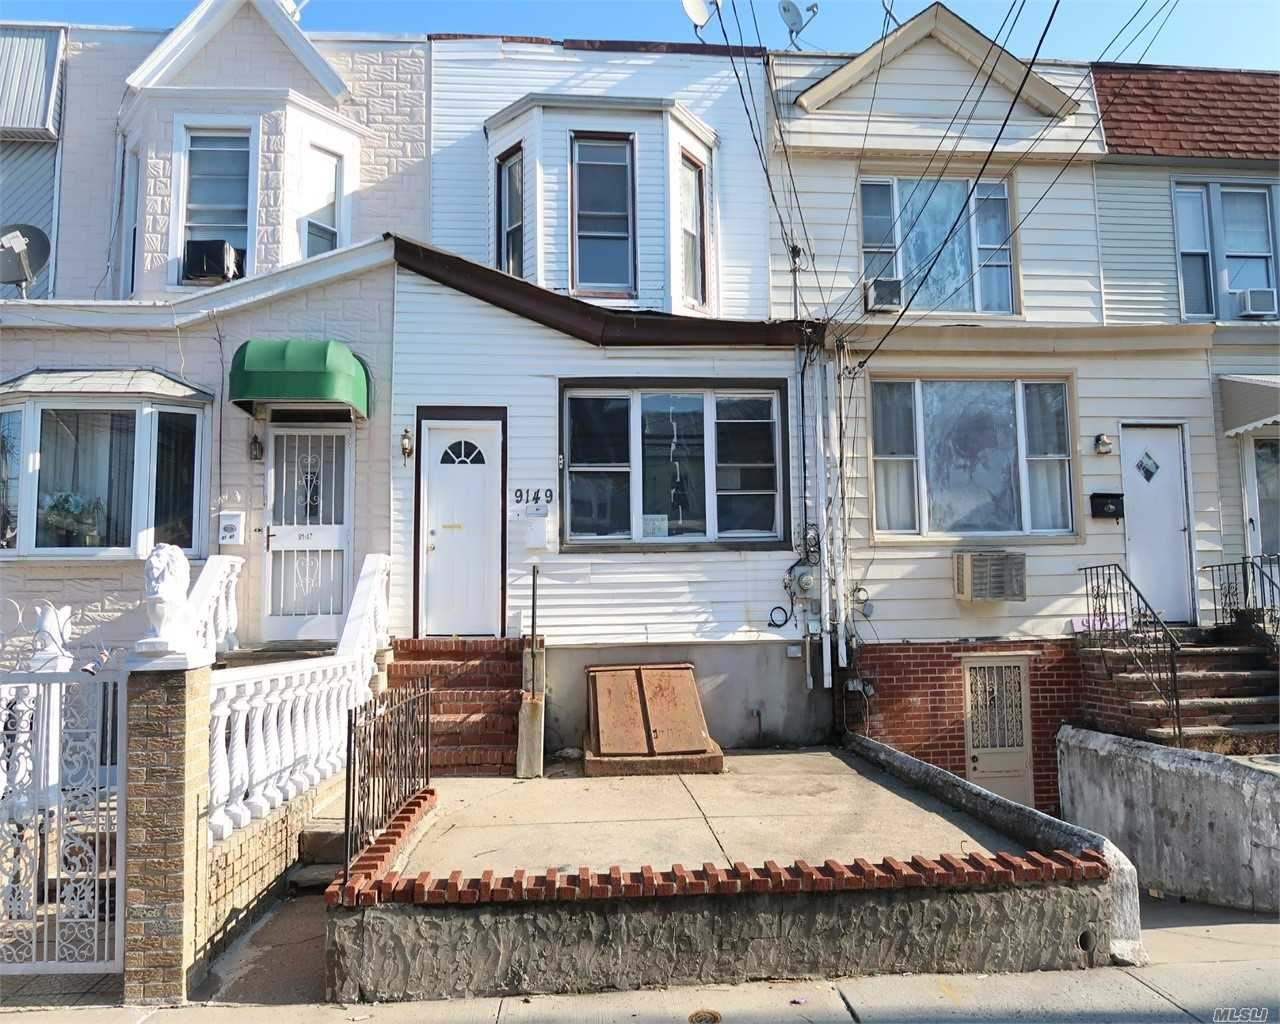 91-49 88th Street, Woodhaven, NY 11421 - MLS#: 3186917